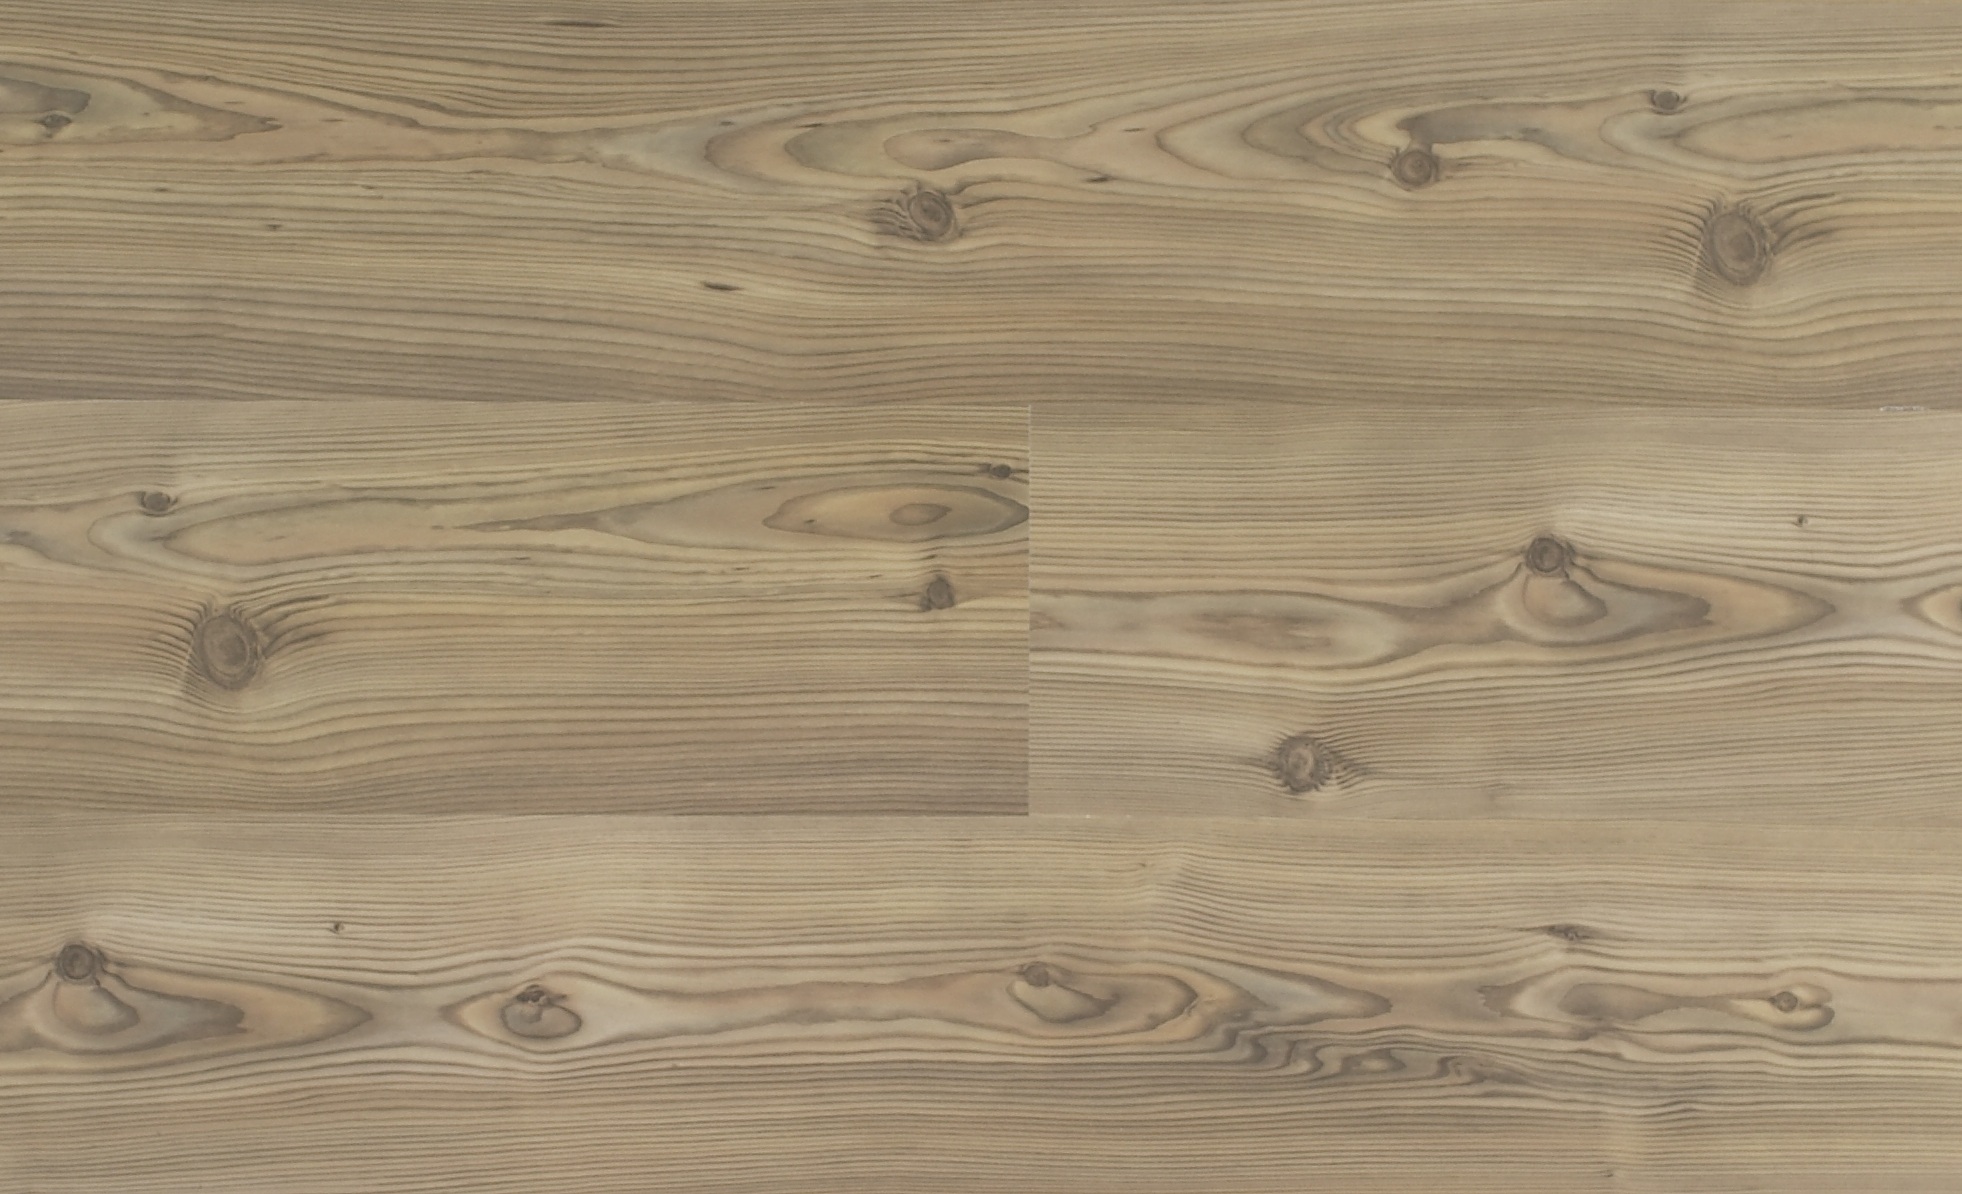 Wood tile texture crowdbuild for 1 wood tile texture dailygadgetfo Image collections